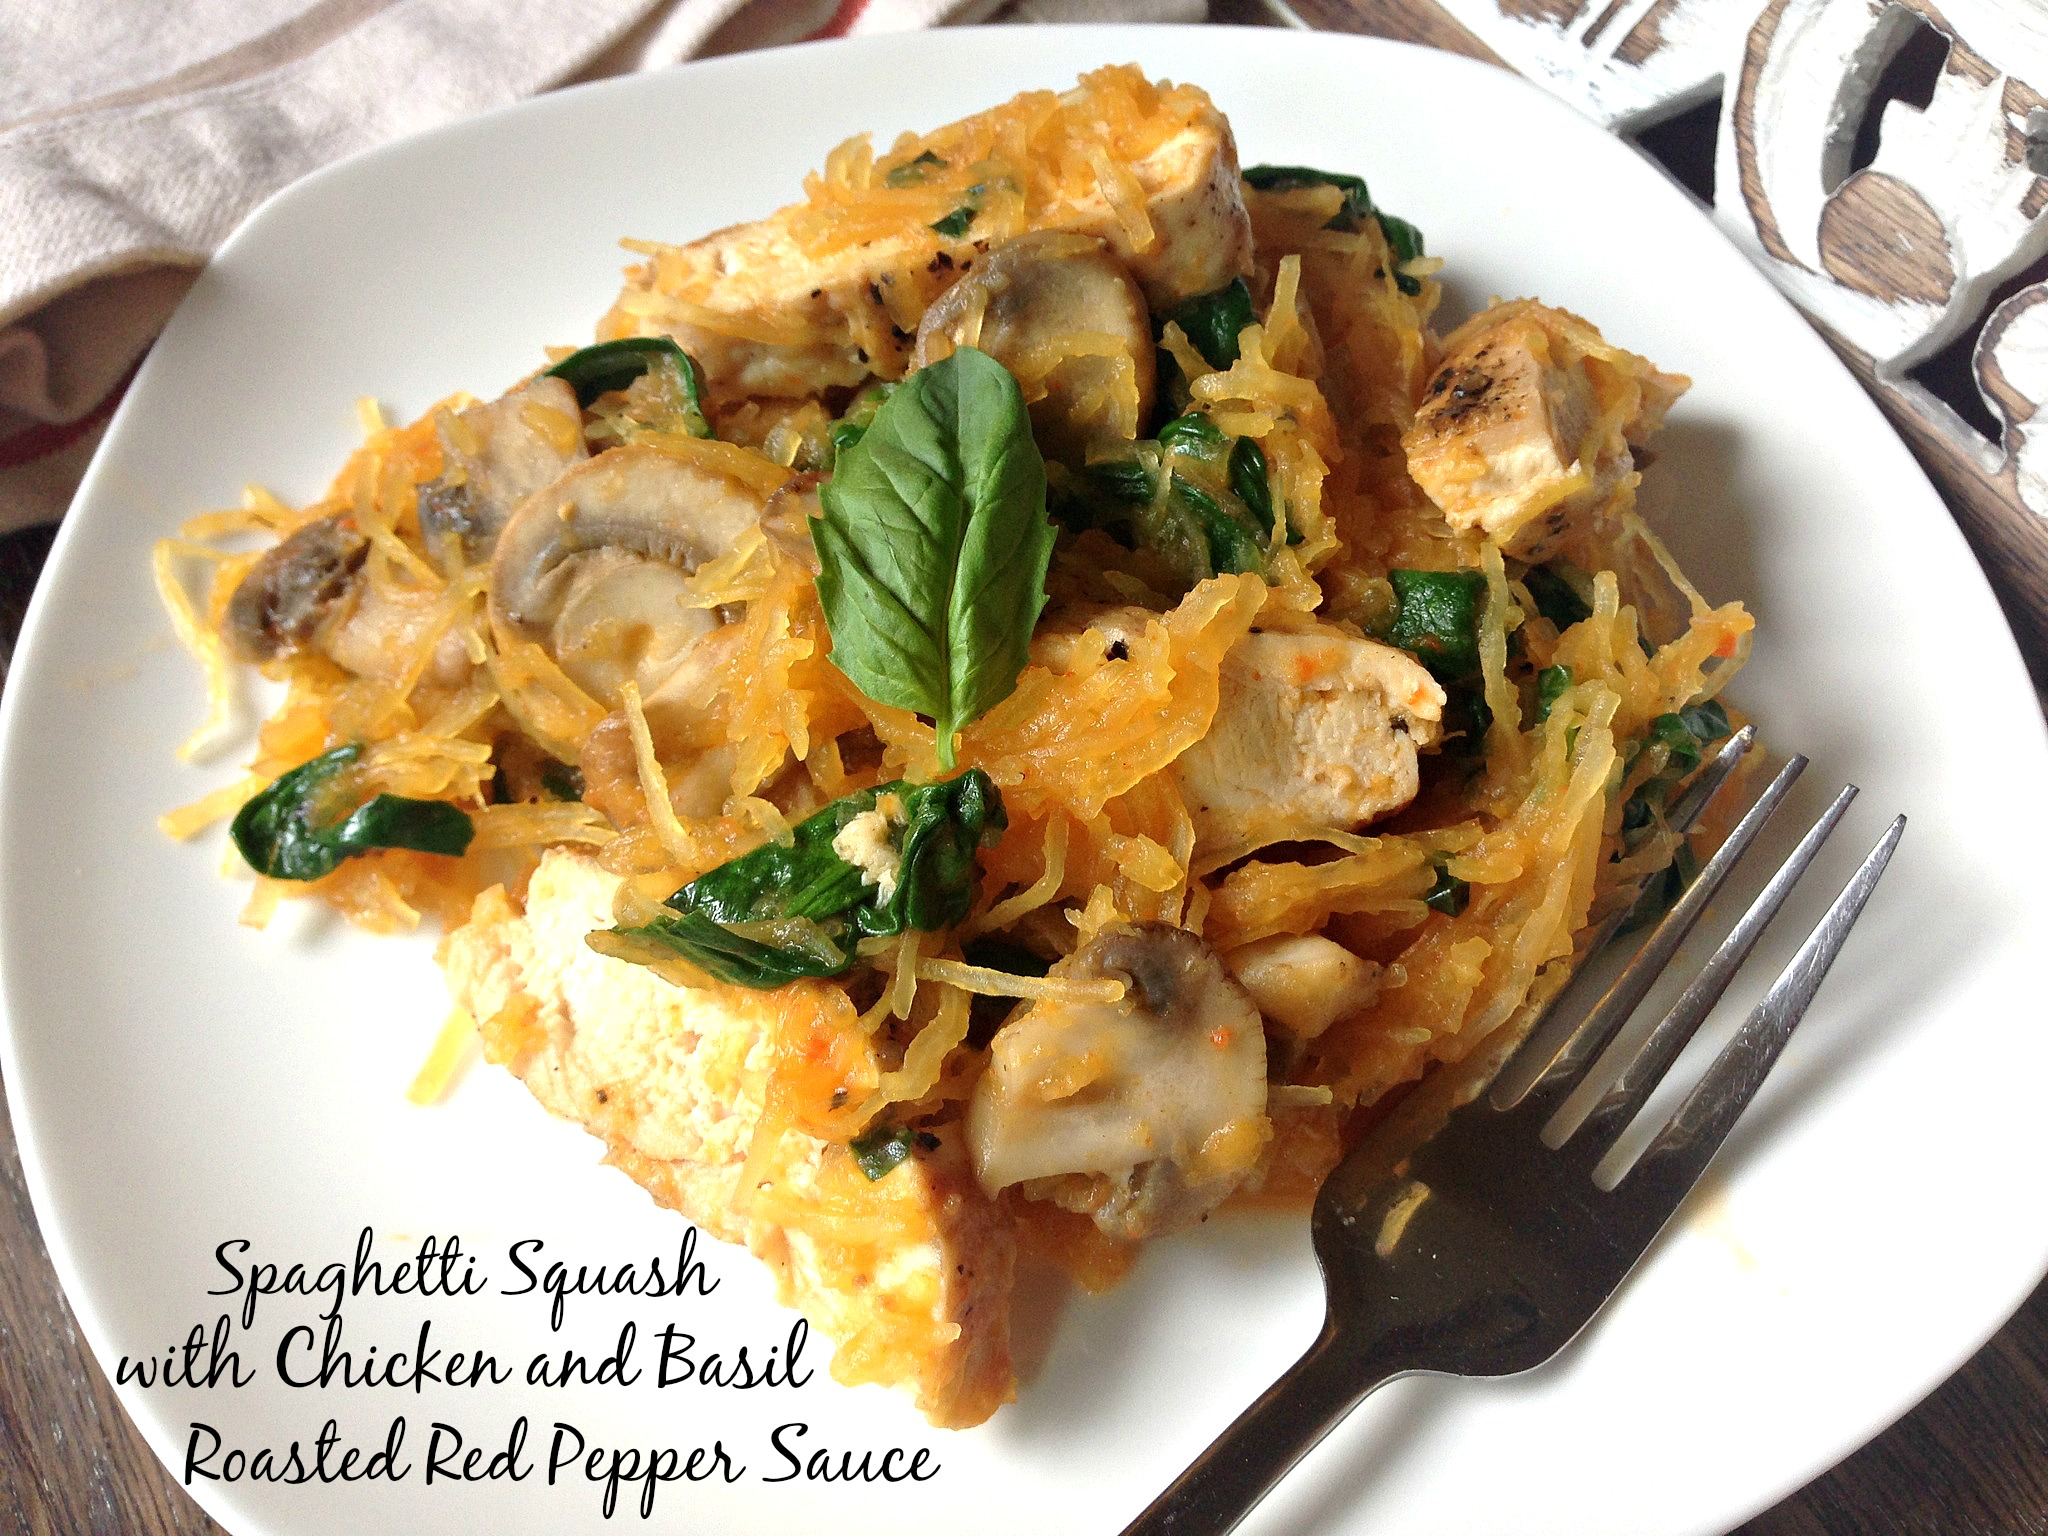 Spaghetti Squash with Chicken and Roasted Red Pepper Sauce